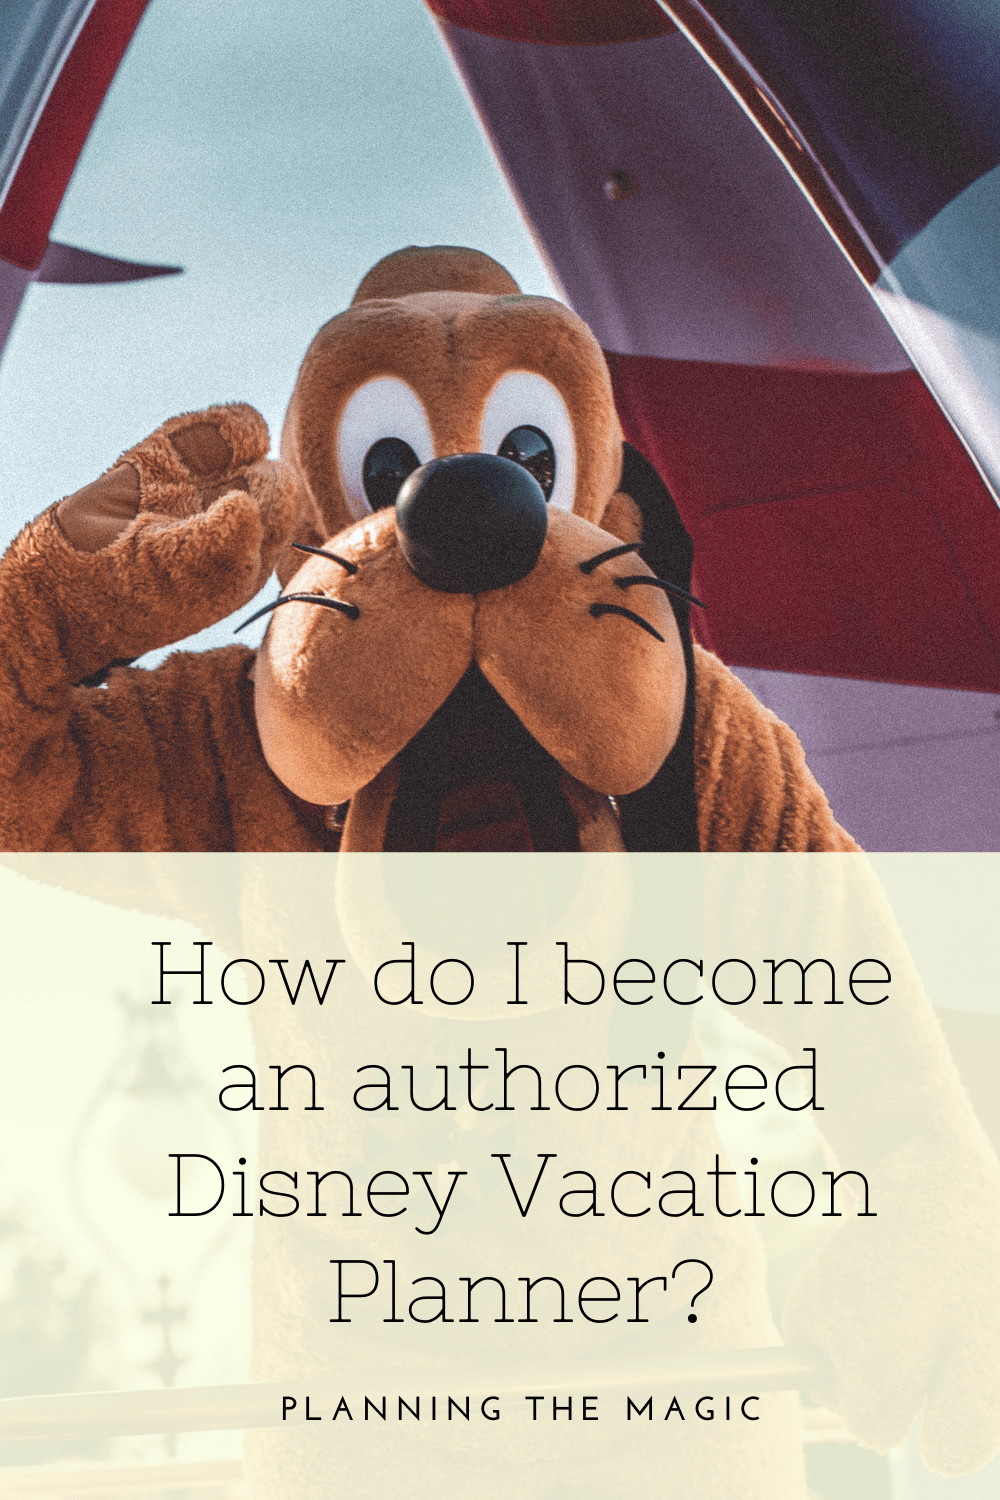 How do I become an authorized Disney Vacation Planner